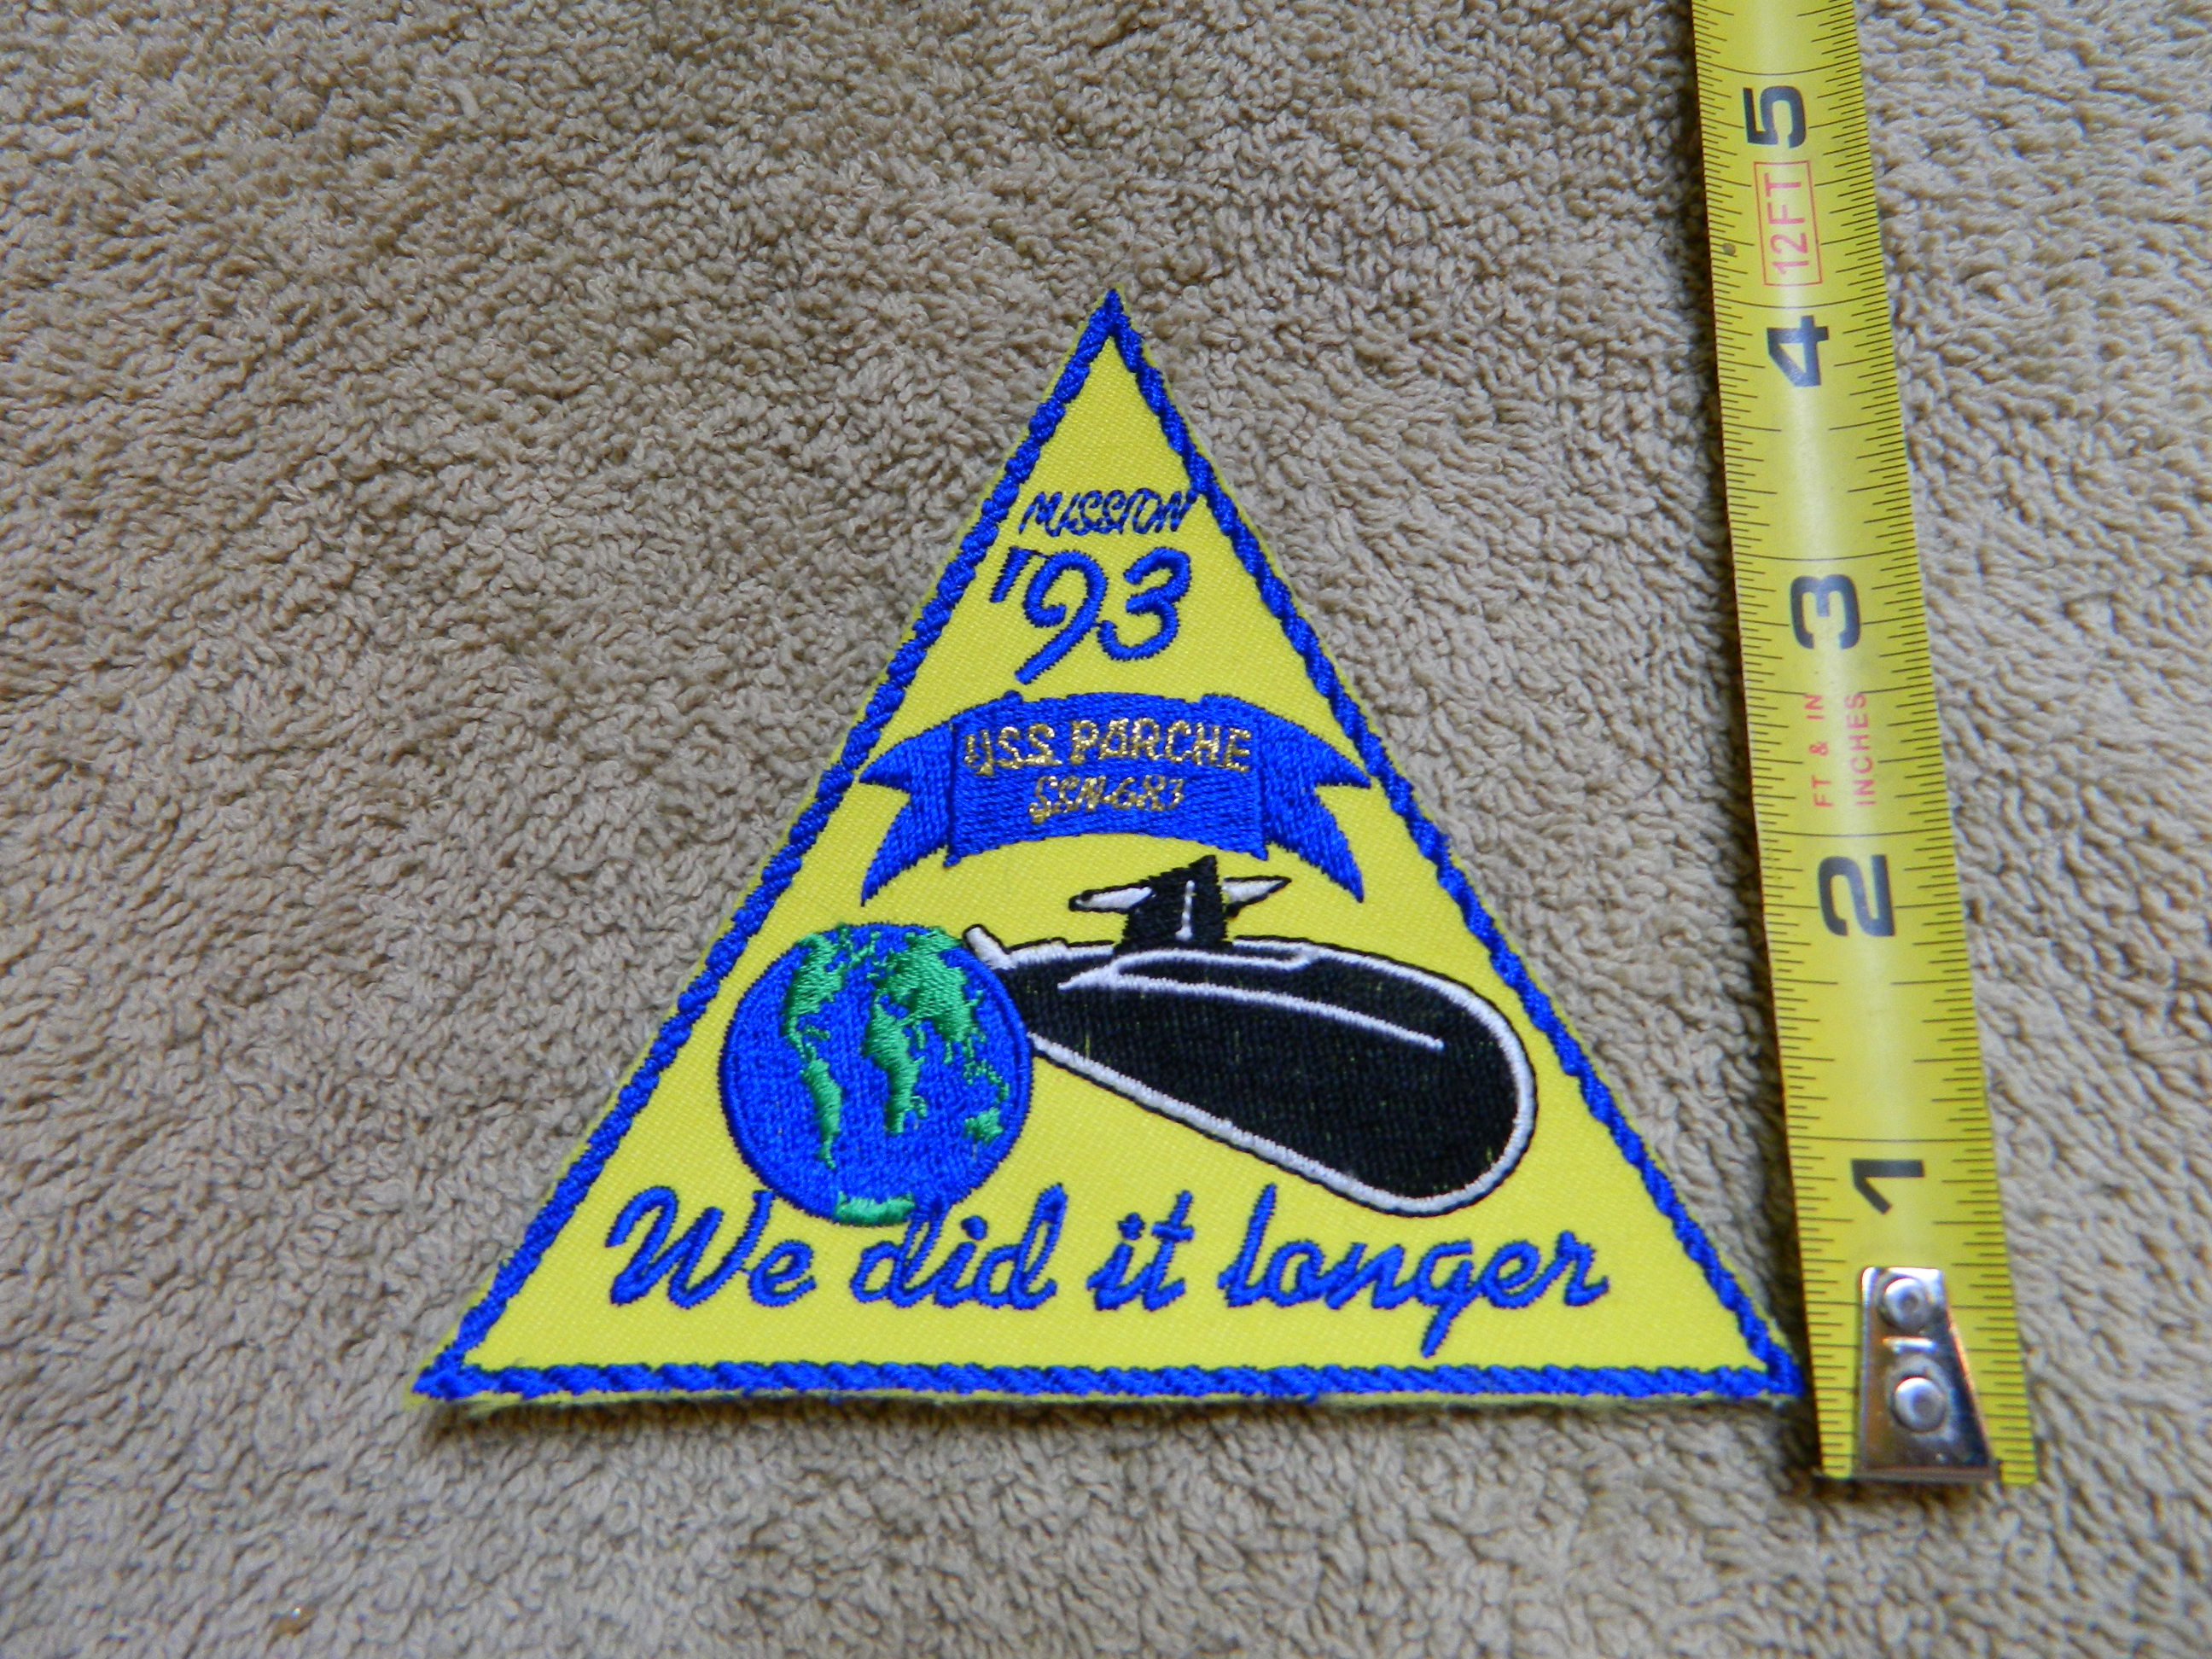 USN: USS PARCHE SSN-GR3 MISSION '93 Color Patch